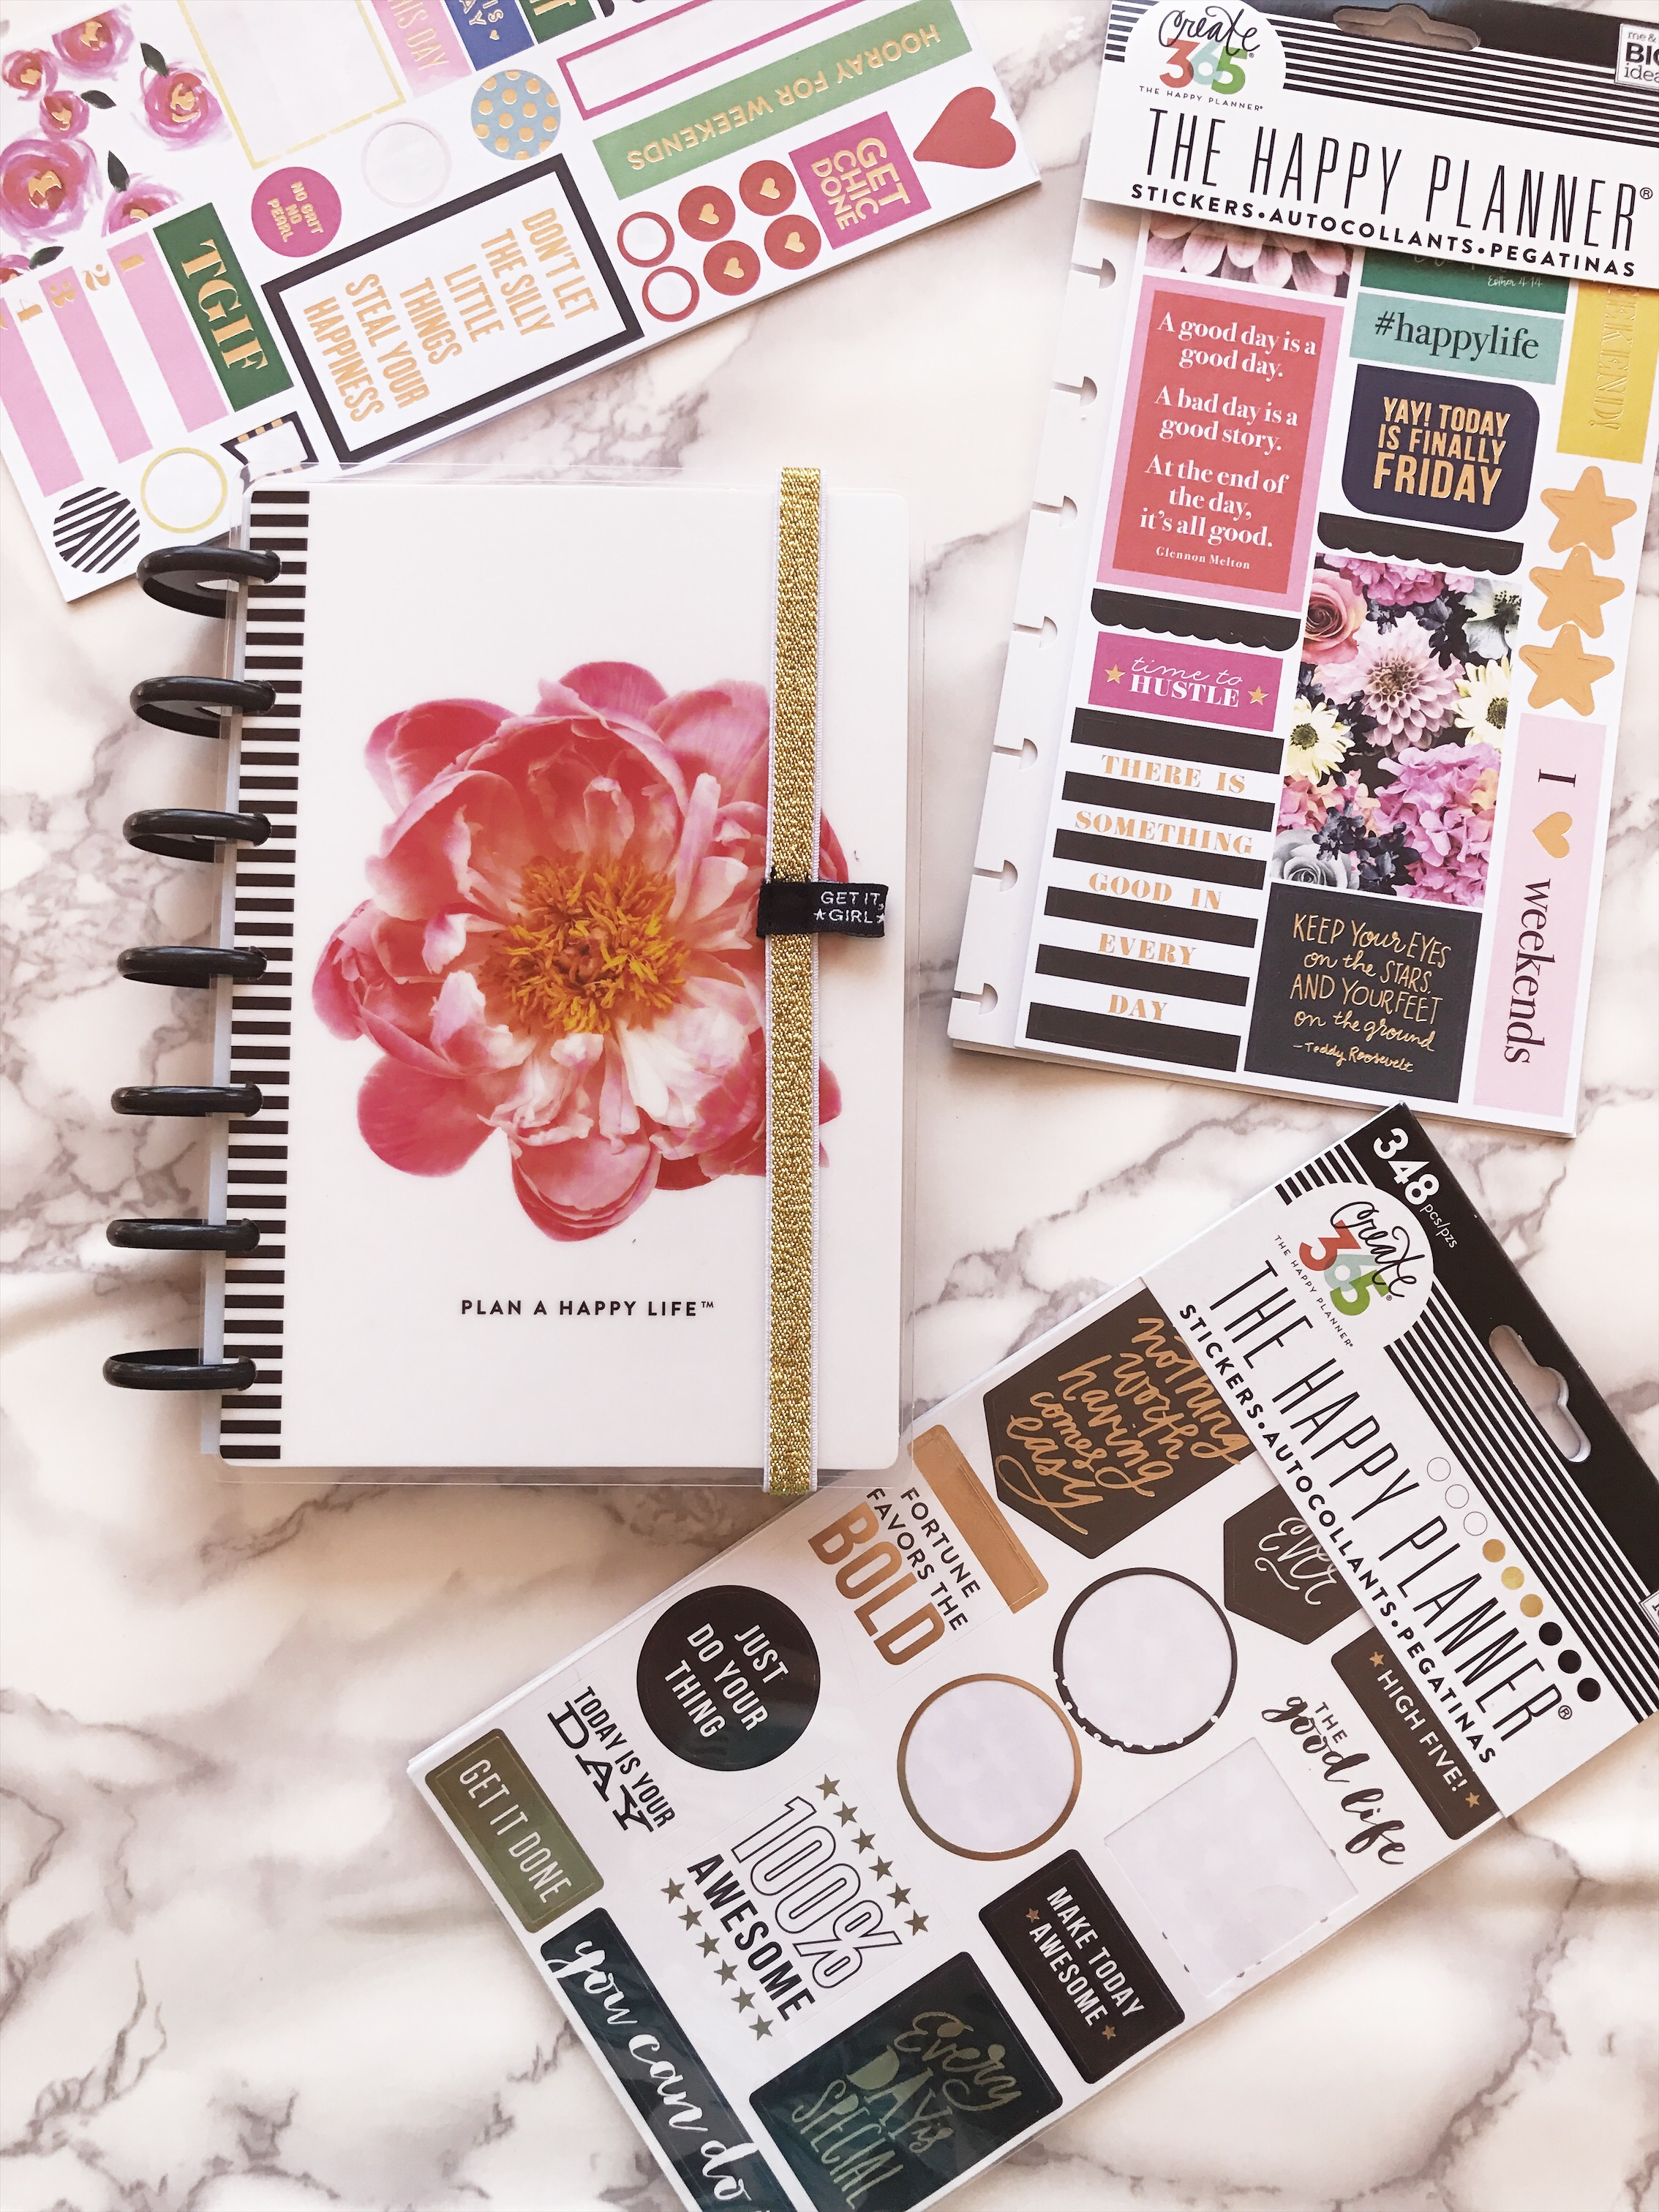 Staying organized and my planner set-up using the MAMBI Happy Planner